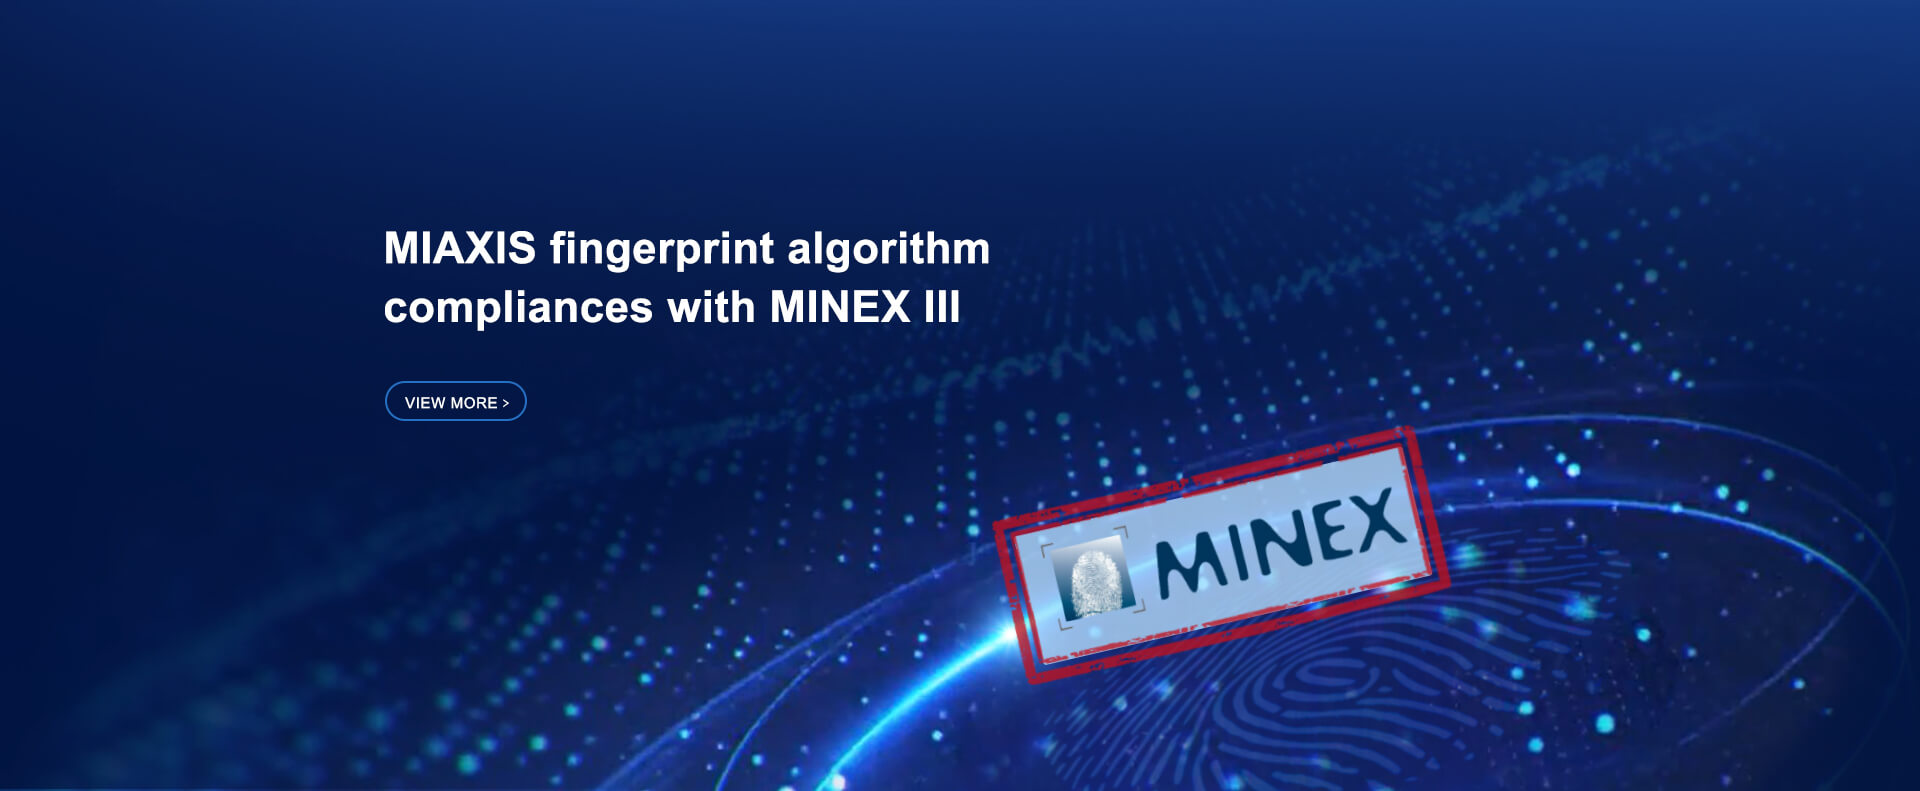 miaxis fingerprint algorithm  compliances with minex